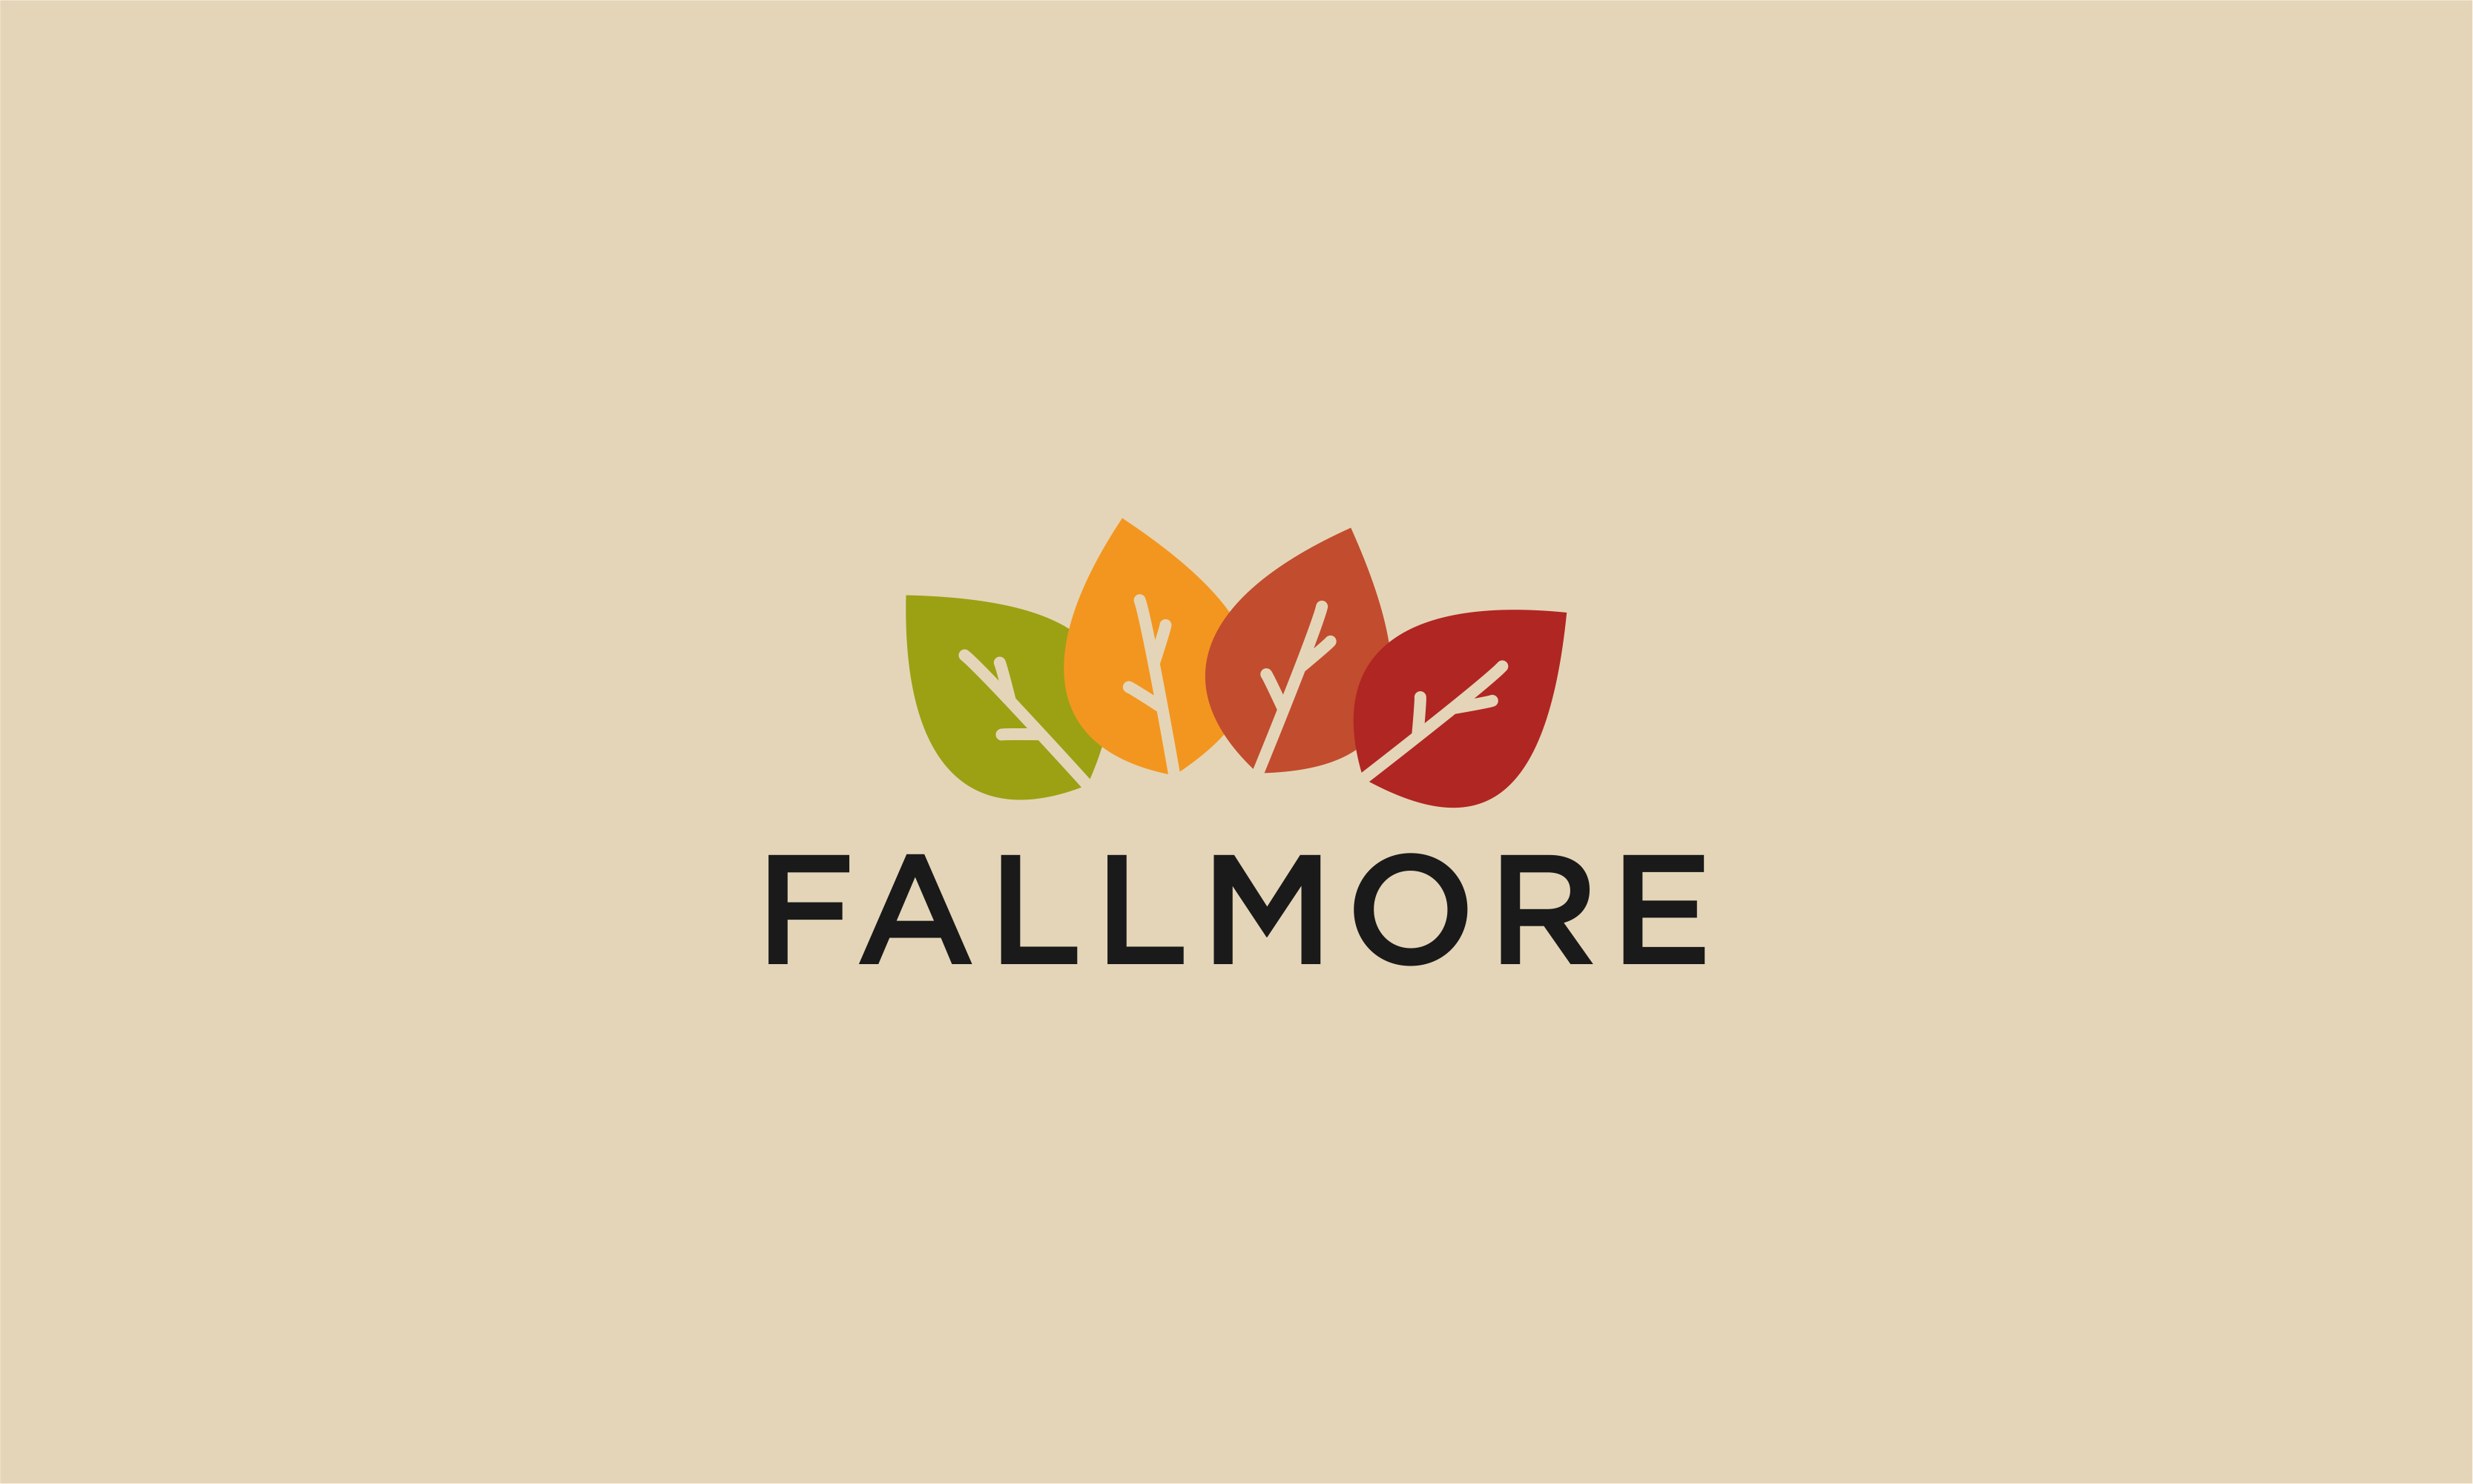 Fallmore - Retail domain name for sale